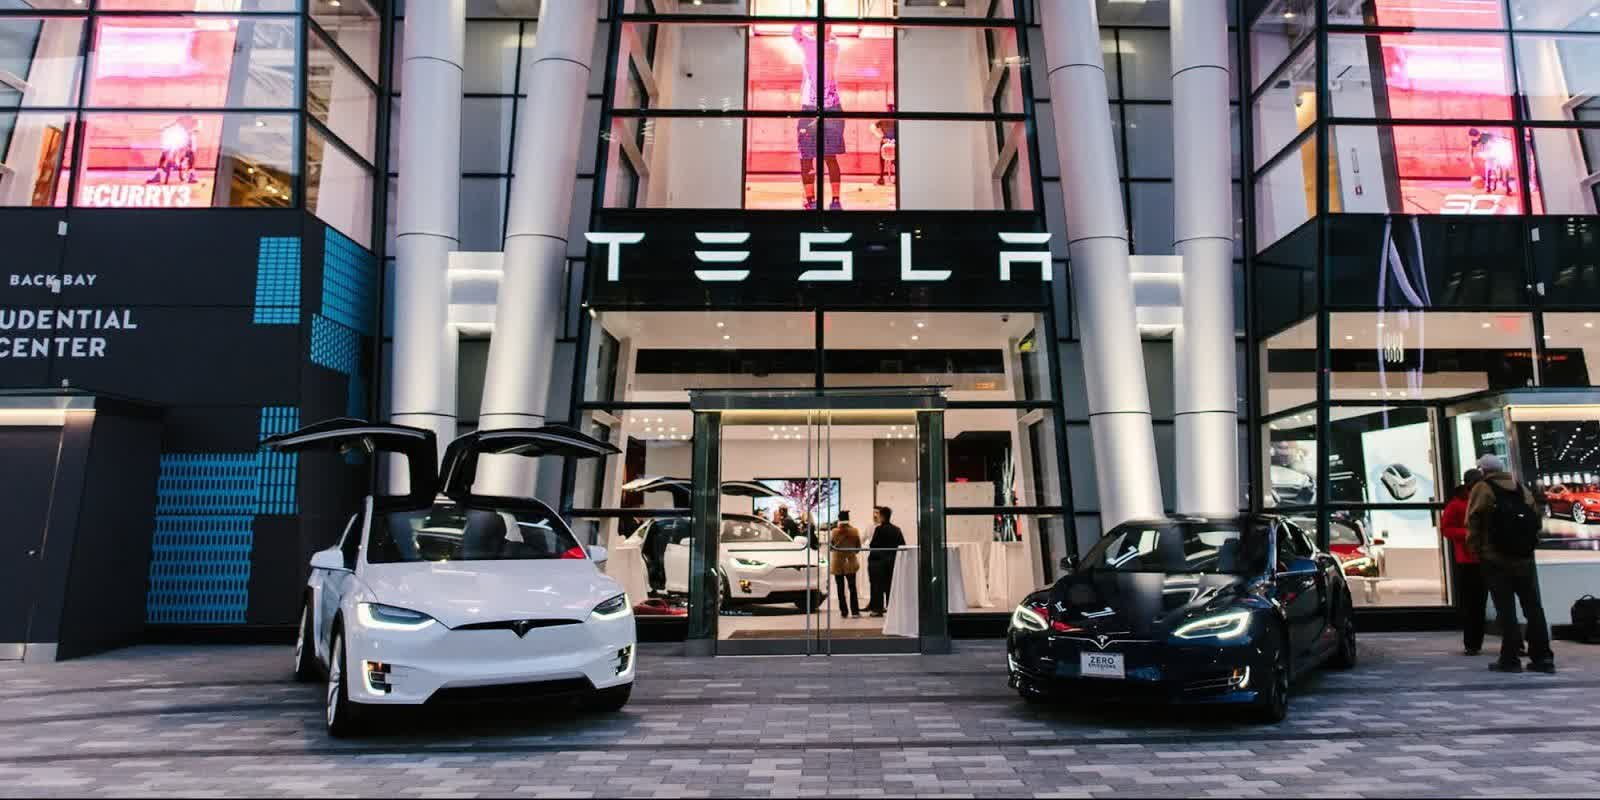 Elon Musk says Apple's Tim Cook refused to meet with him to discuss acquiring Tesla